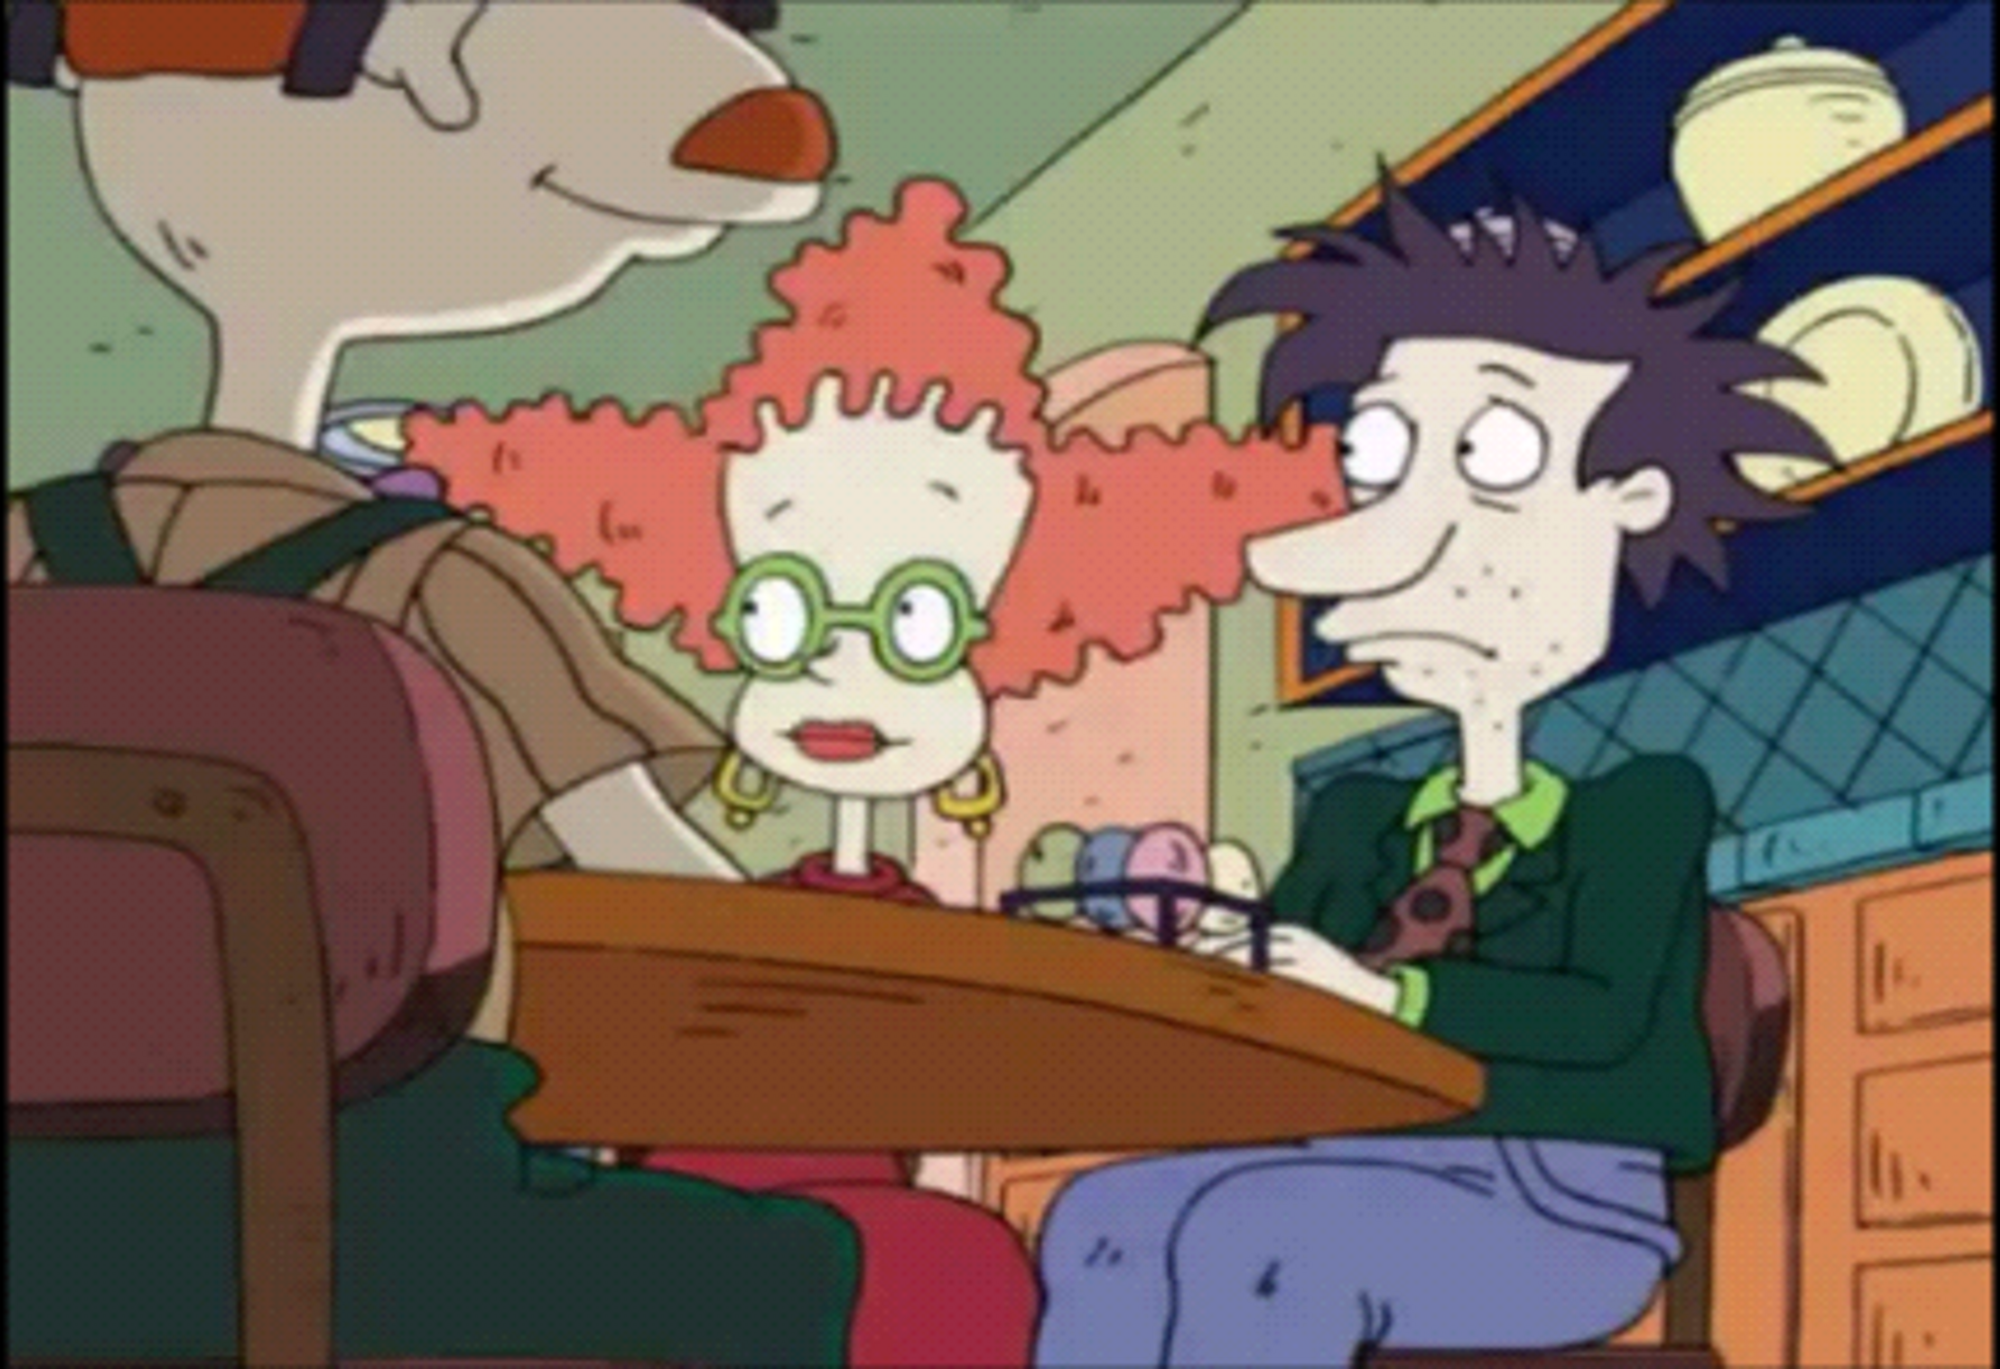 Wedding vows wiki - Image Rugrats Bow Wow Wedding Vows 25 Png Rugrats Wiki Fandom Powered By Wikia